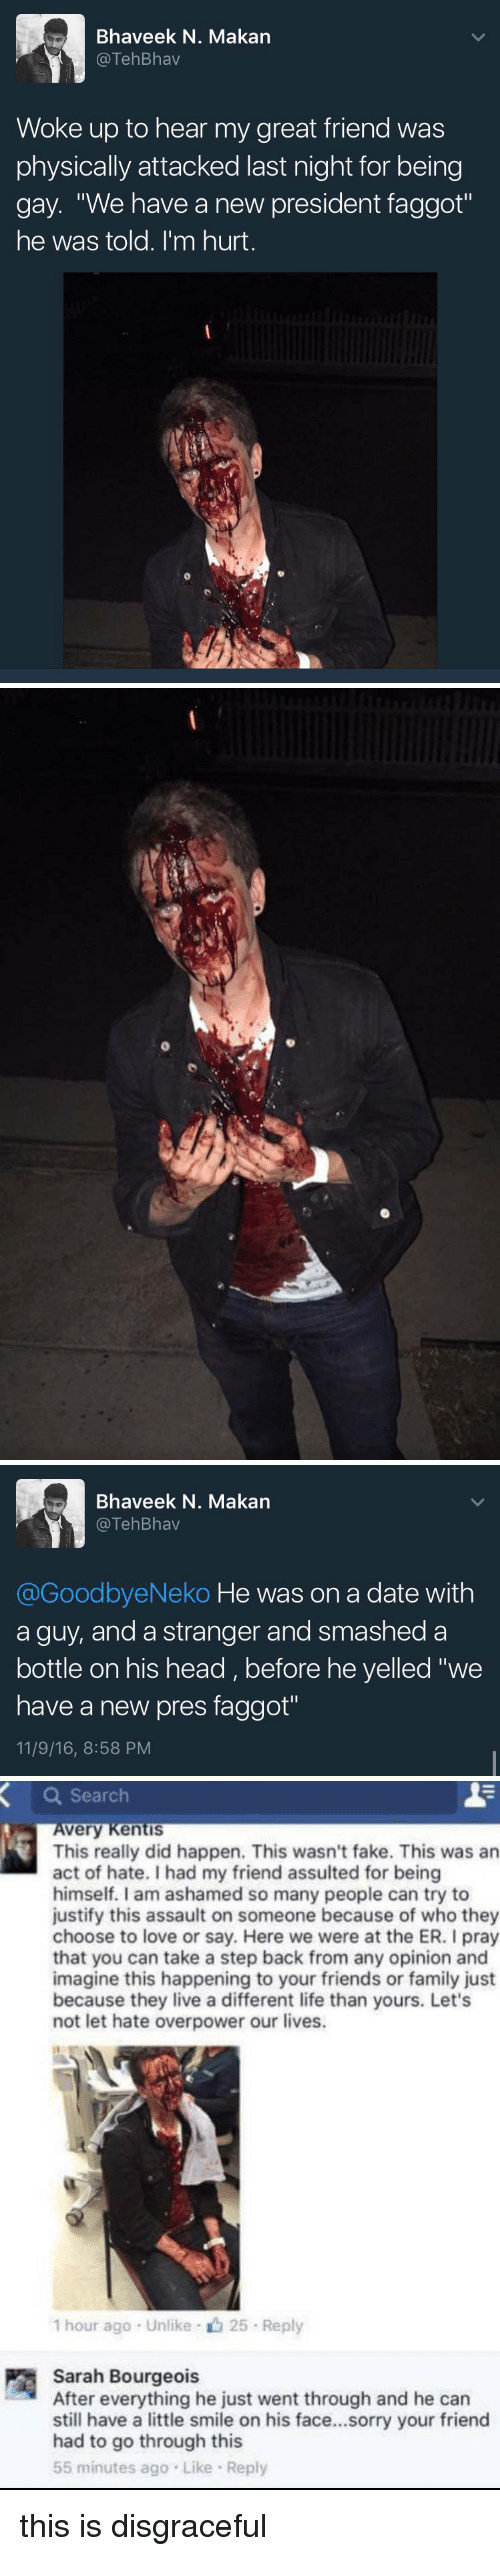 """Opinionating: Bhaveek N. Makan  TehBhav  Woke up to hear my great friend was  physically attacked last night for being  gay. """"We have a new president faggot""""  he was told. I'm hurt   Bhaveek N. Makan  TehBhav  @GoodbyeNeko He was on a date with  a guy, and a stranger and smashed a  bottle on his head before he yelled """"we  have a new pres faggot""""  11/9/16, 8:58 PM   a Search  very Kentis  This really did happen. This wasn't fake. This was an  act of hate. had my friend assulted for being  himself. I am ashamed so many people can try to  justify this assault on someone because of who they  choose to love or say. Here we were at the ER. I pray  that you can take a step back from any opinion and  imagine this happening to your friends or family just  because they live a different life than yours. Let's  not let hate overpower our lives.  1 hour ago Unlike 25 Reply  Sarah Bourgeois  After everything he just went through and he can  still have a little smile on his face...sorry your friend  had to go through this  55 minutes ago Like Reply this is disgraceful"""